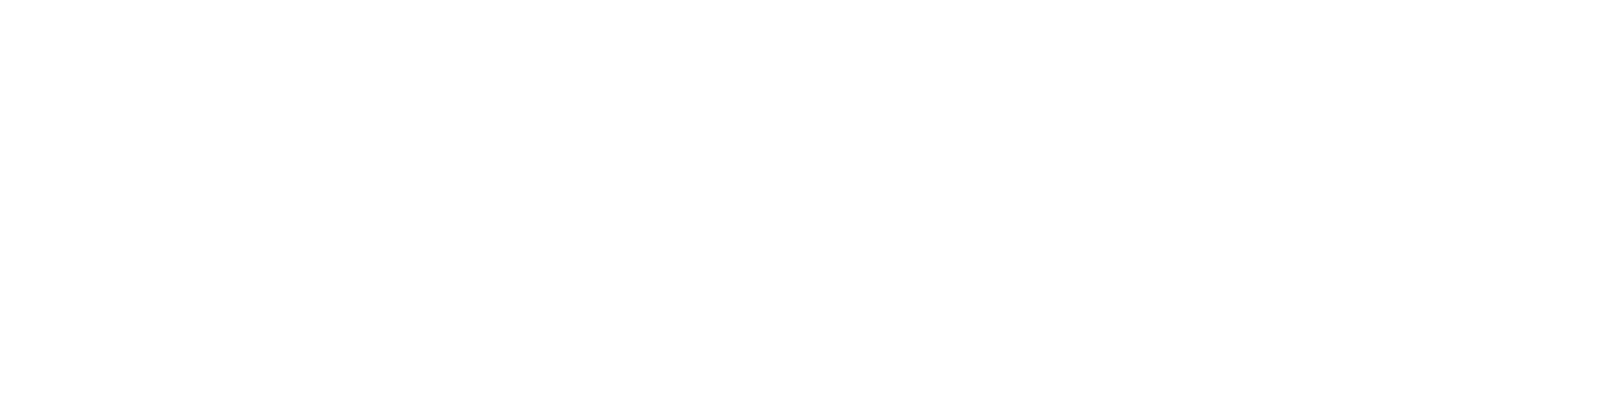 Empower Servers Helpdesk